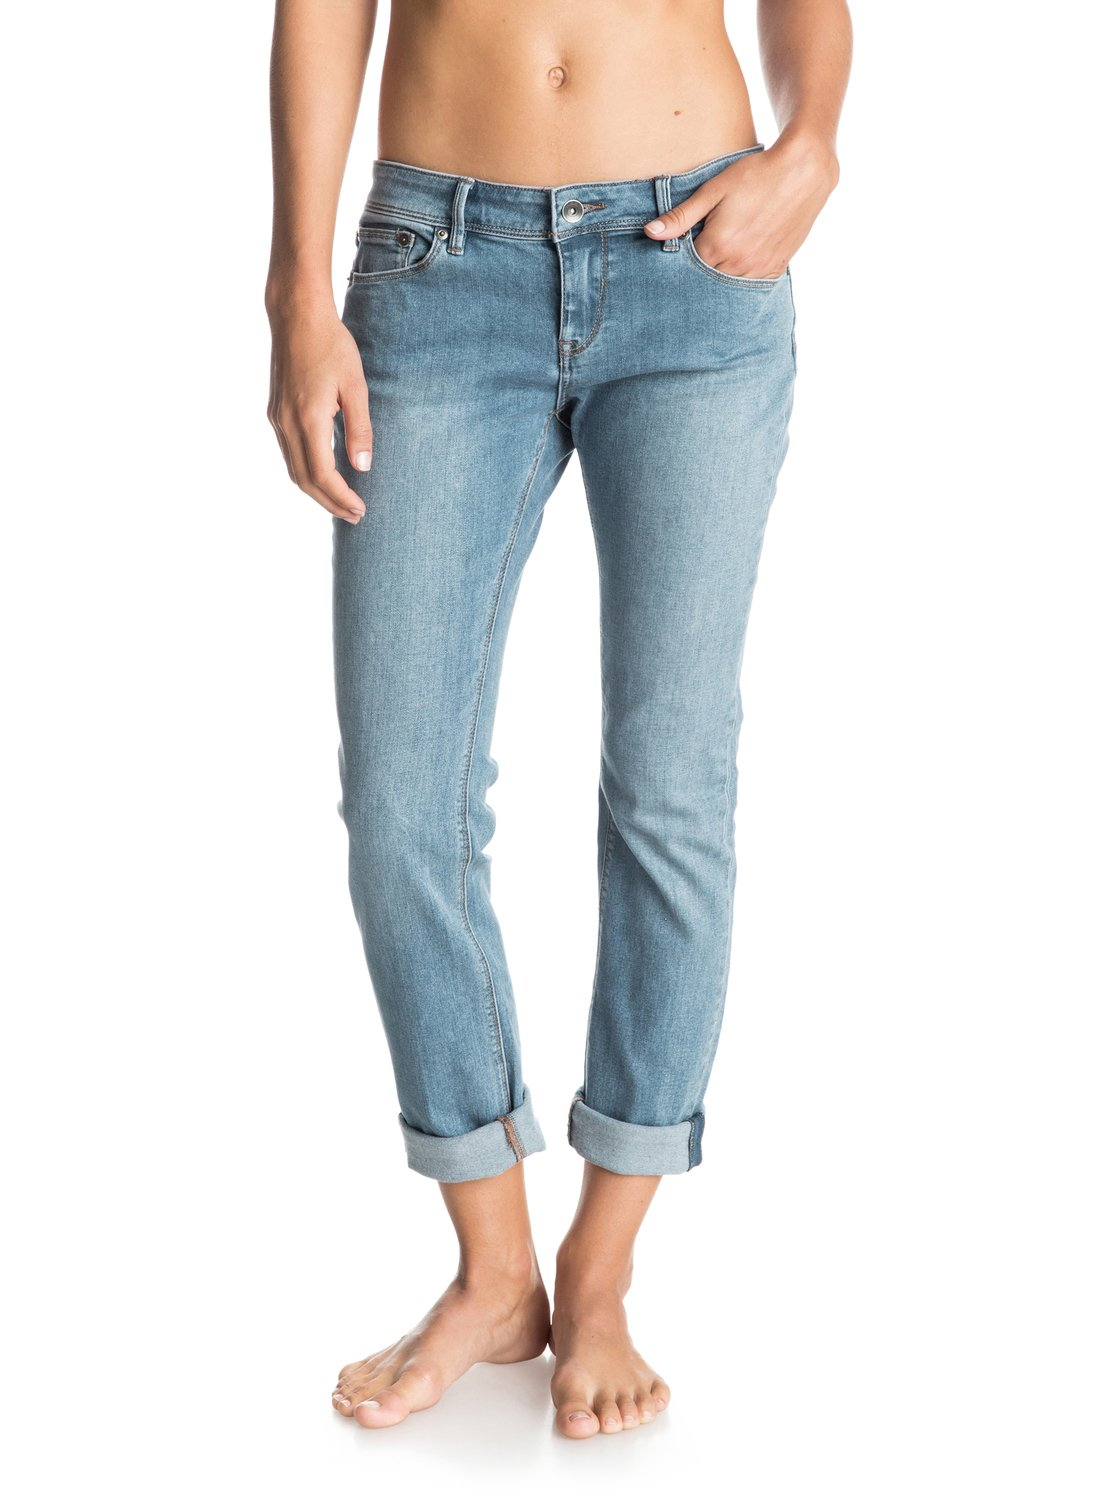 Womens Suntrippers Vintage Wash M Skinny Jeans - Roxy������� ������ Suntrippers Vintage Wash M �� ROXY. <br>��������������: ������ �������� ���������� 283,5 �/��. �, ������������ ��������� ����� ����, ������� ���������� ������� ROXY �� ������ ������ �������, ���������� ����. <br>������: 98% ������, 2% �������.<br>